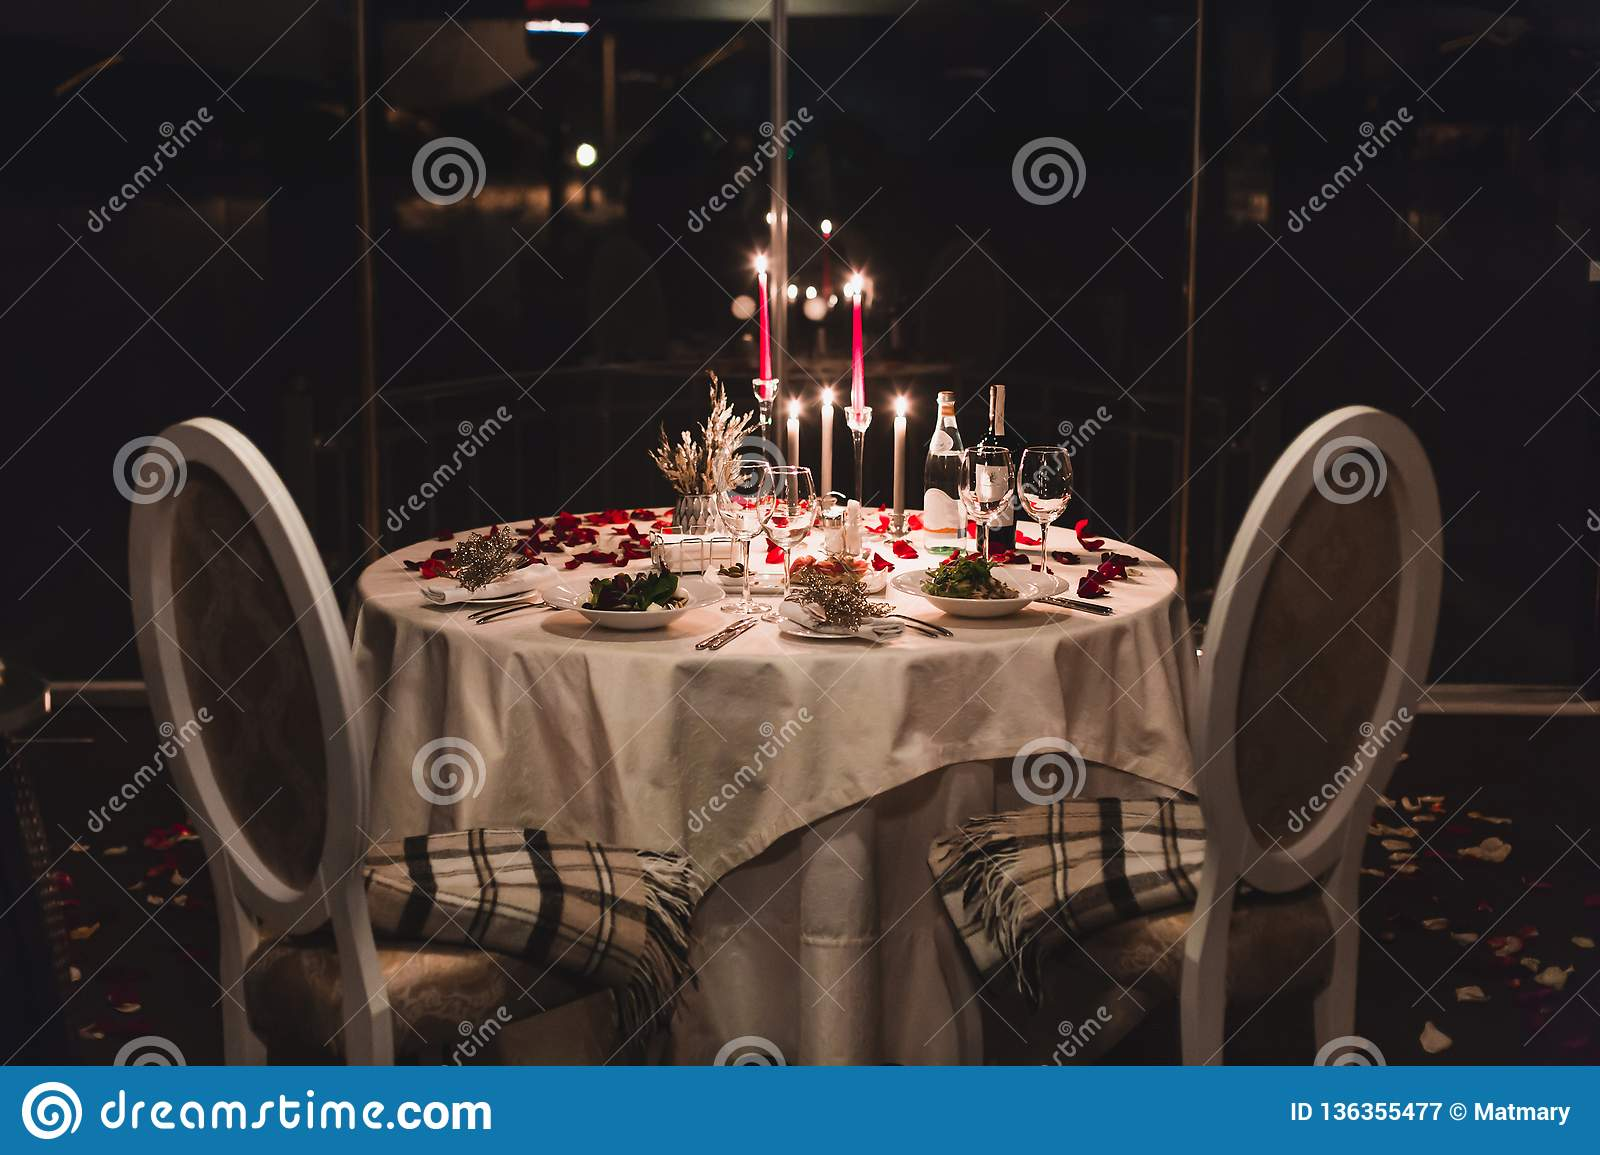 Romantic table setting with wine, beautiful flowers in box, empty glasses, rose petals and candles